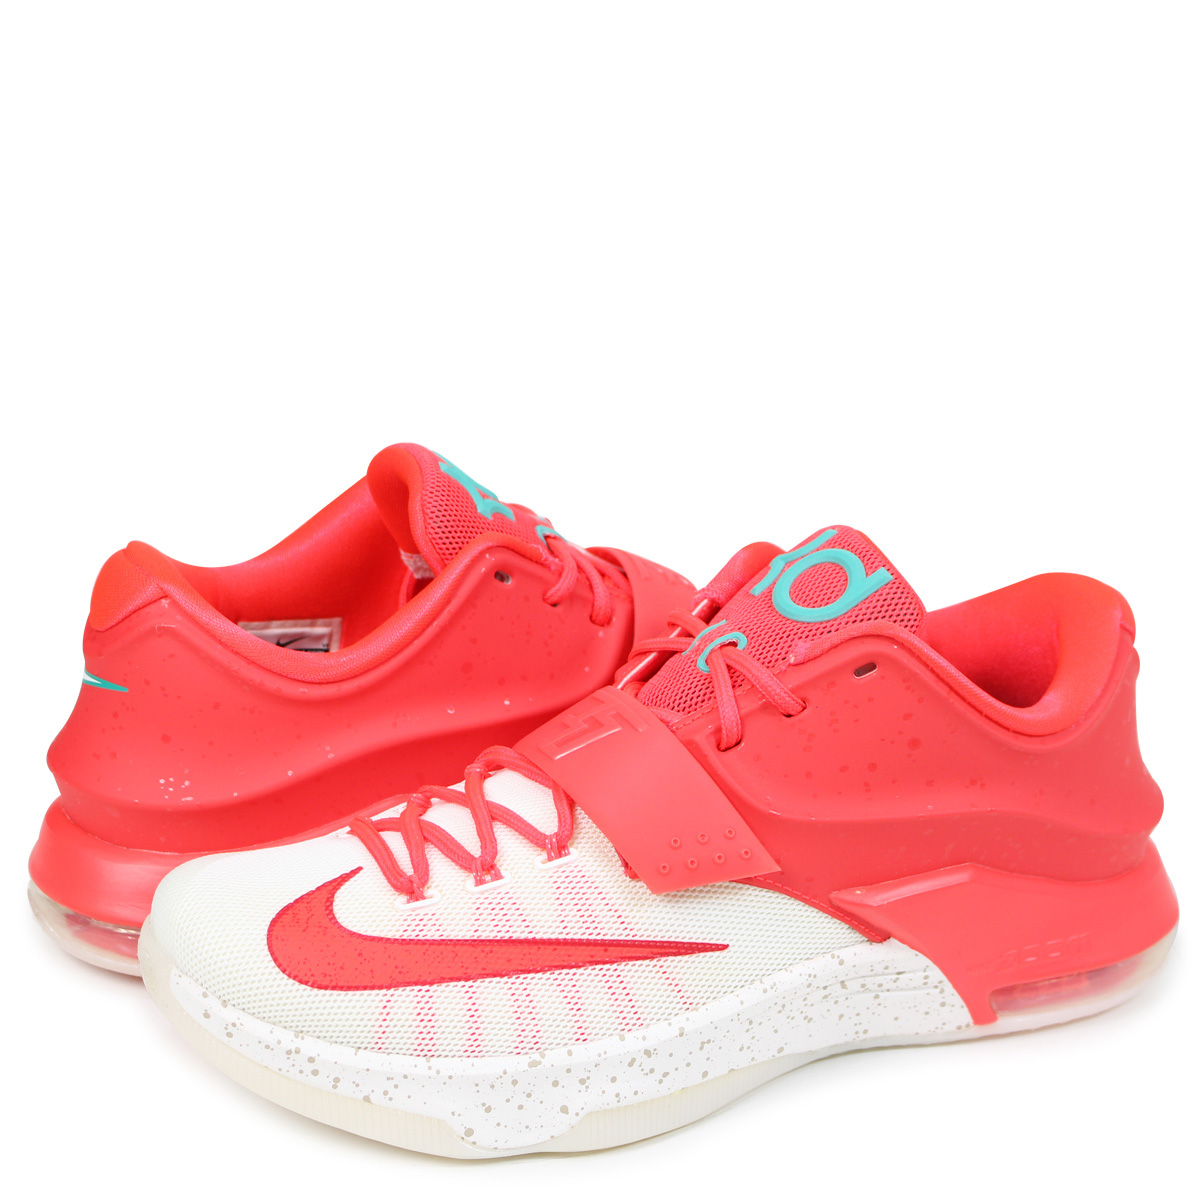 buy popular a39bf 4fa35 Nike NIKE KD 7 Kevin Durant sneakers men XMAS red 707,560-613 [196]